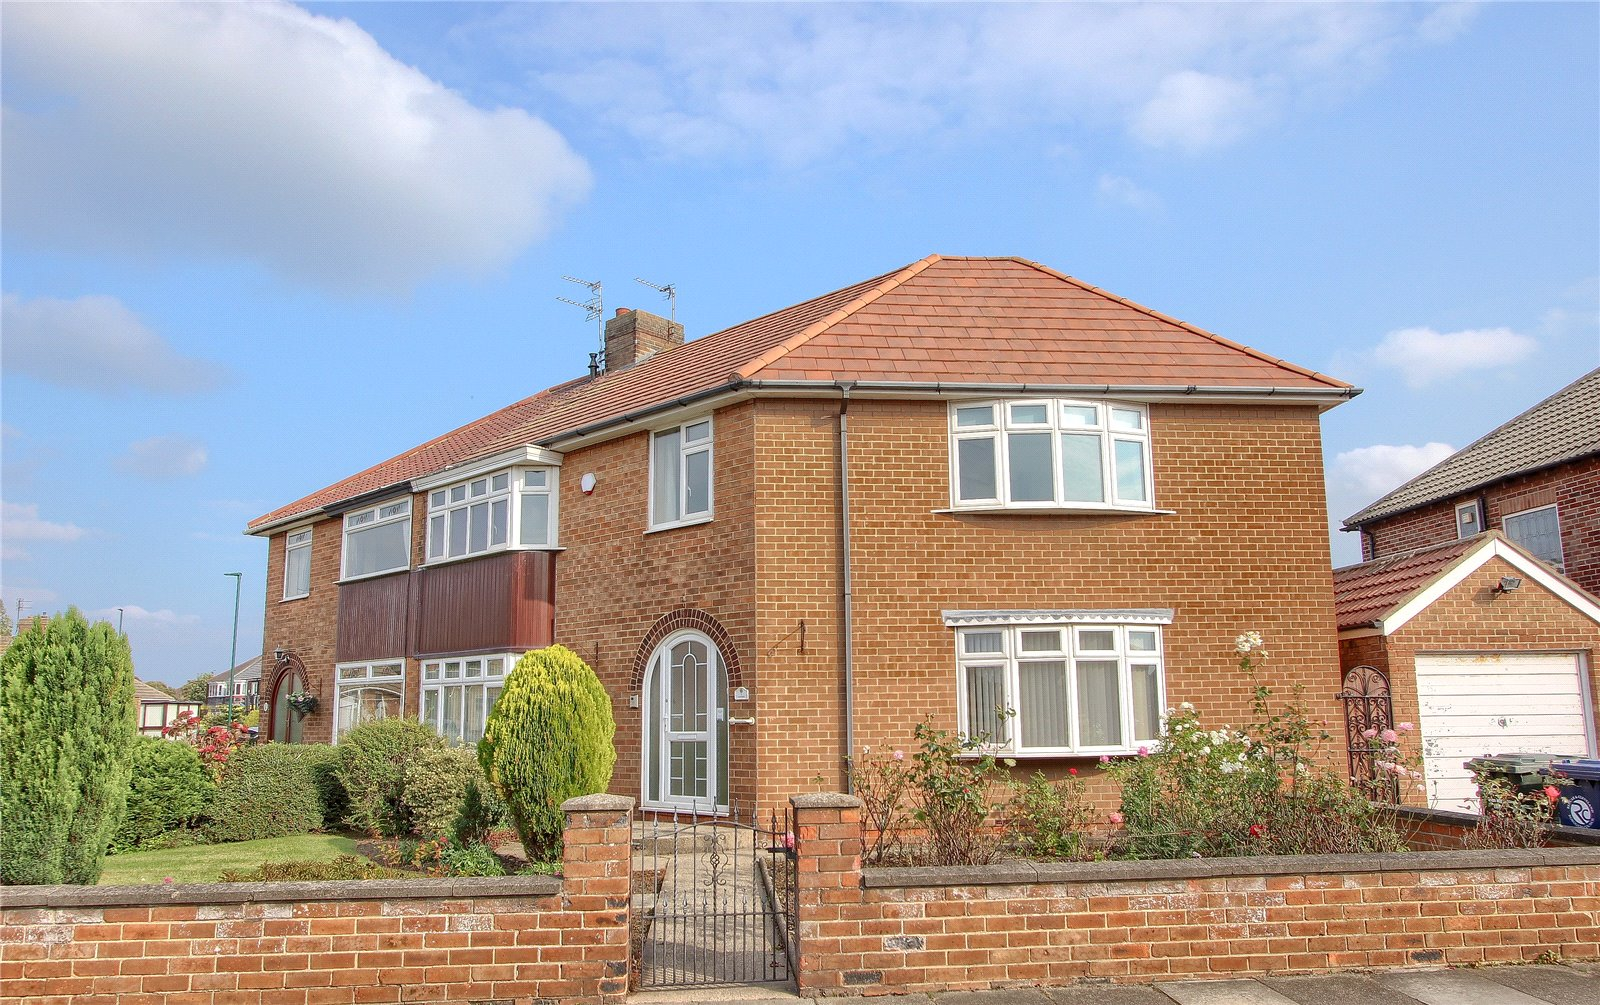 5 bed house for sale in Ascot Road, Redcar  - Property Image 1